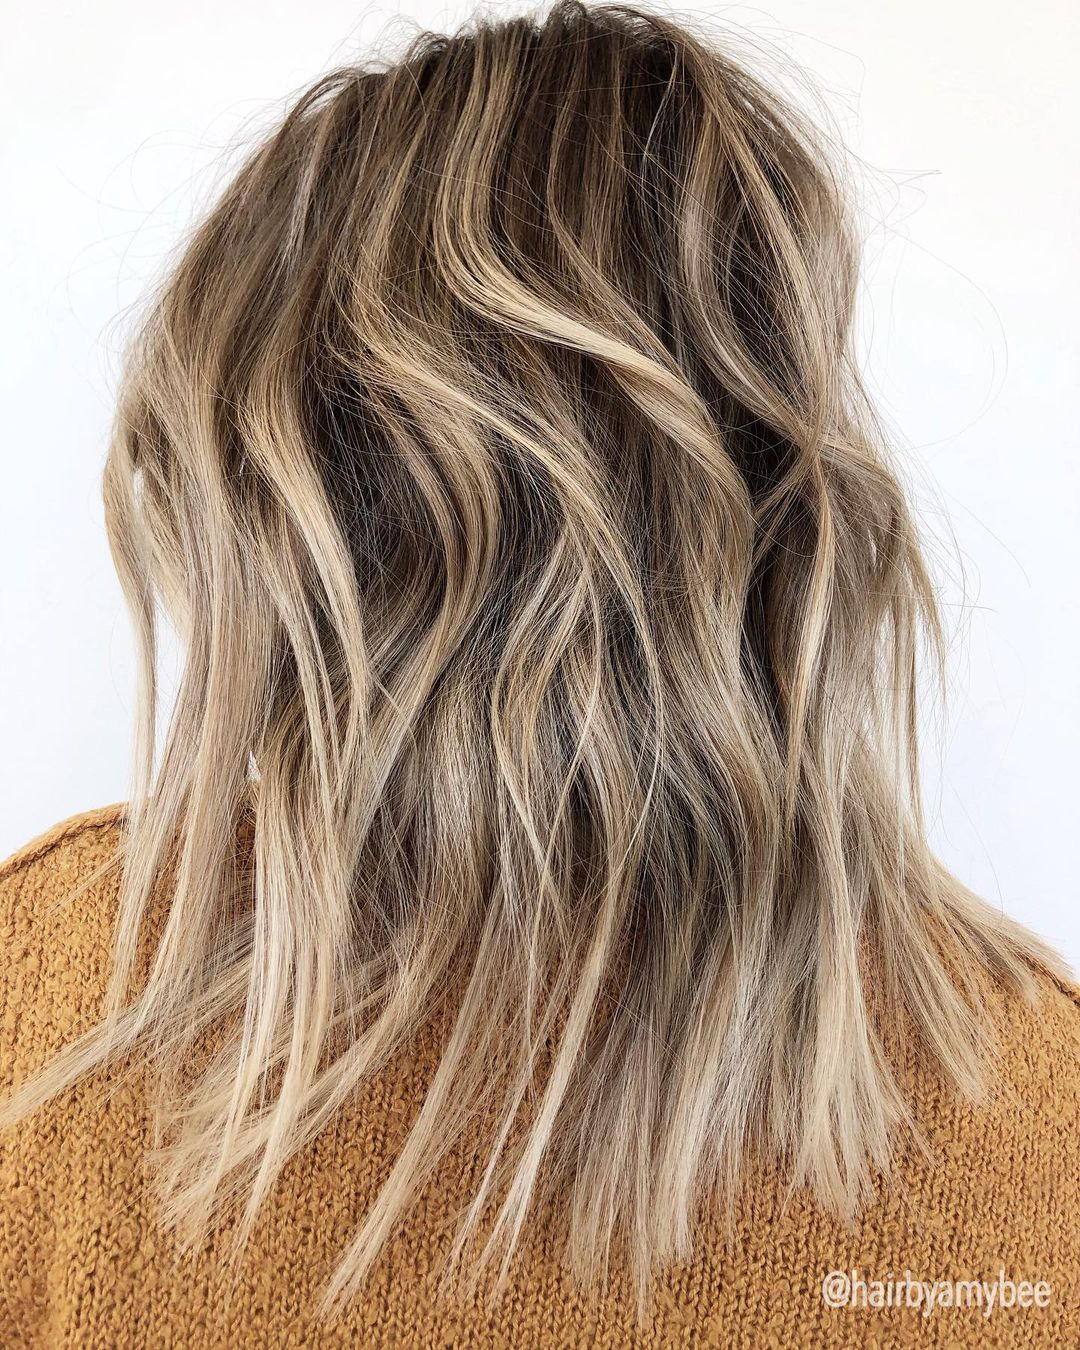 Messy Dirty Blonde Hair with Ash Highlights